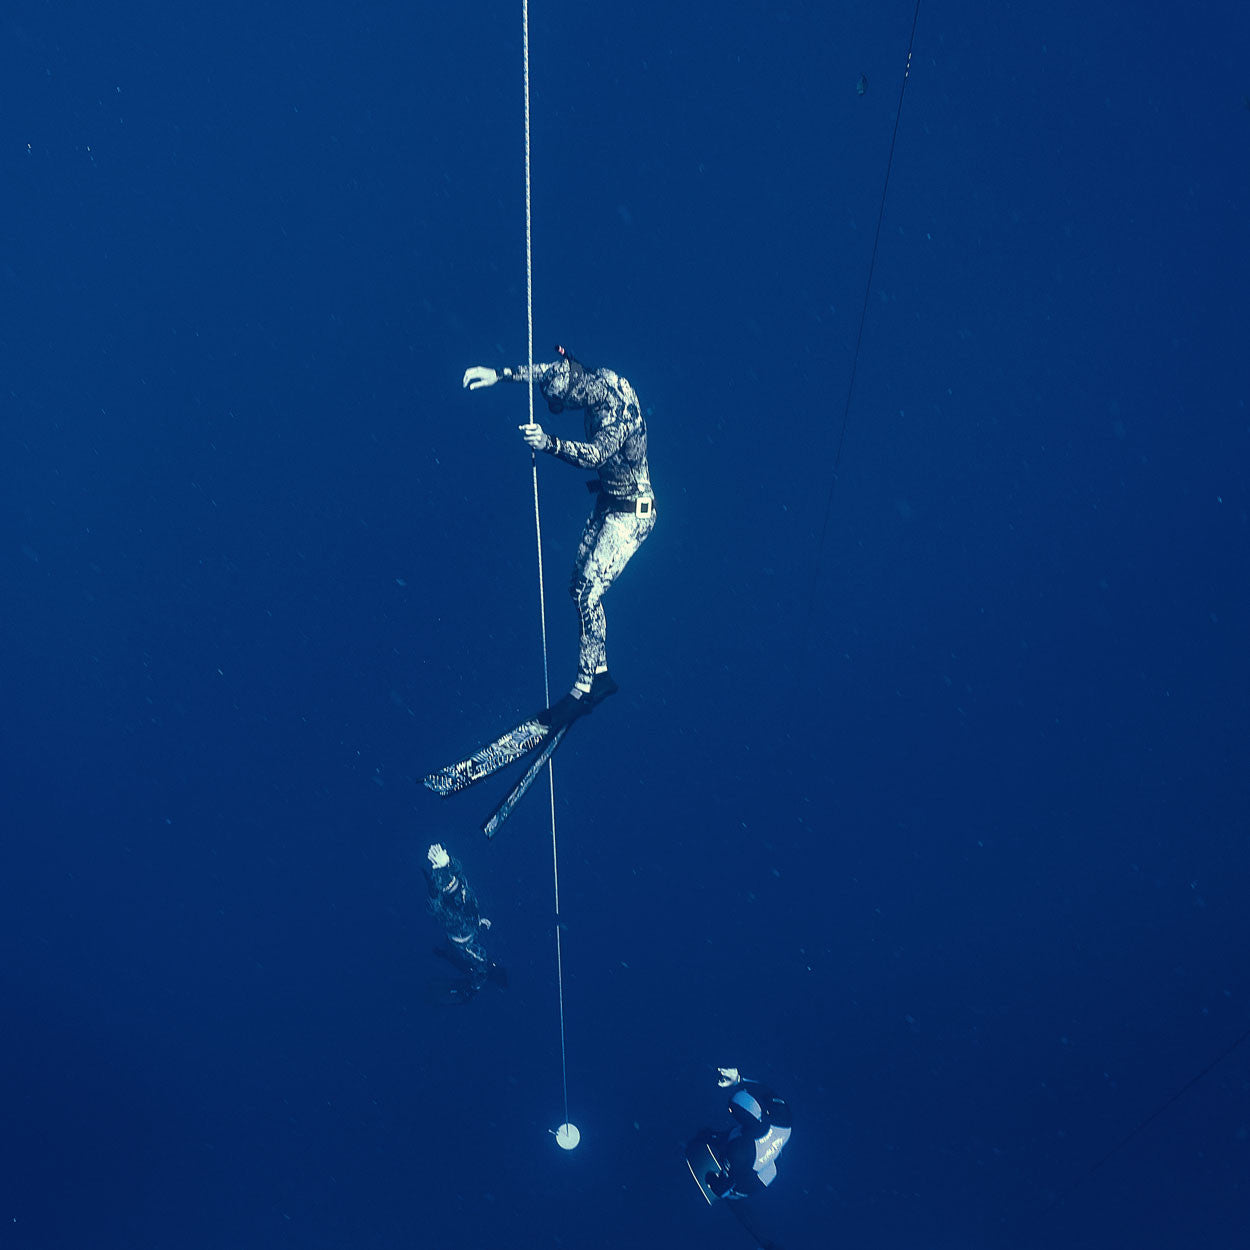 Freediver on deep safety while instructor follows L2 student